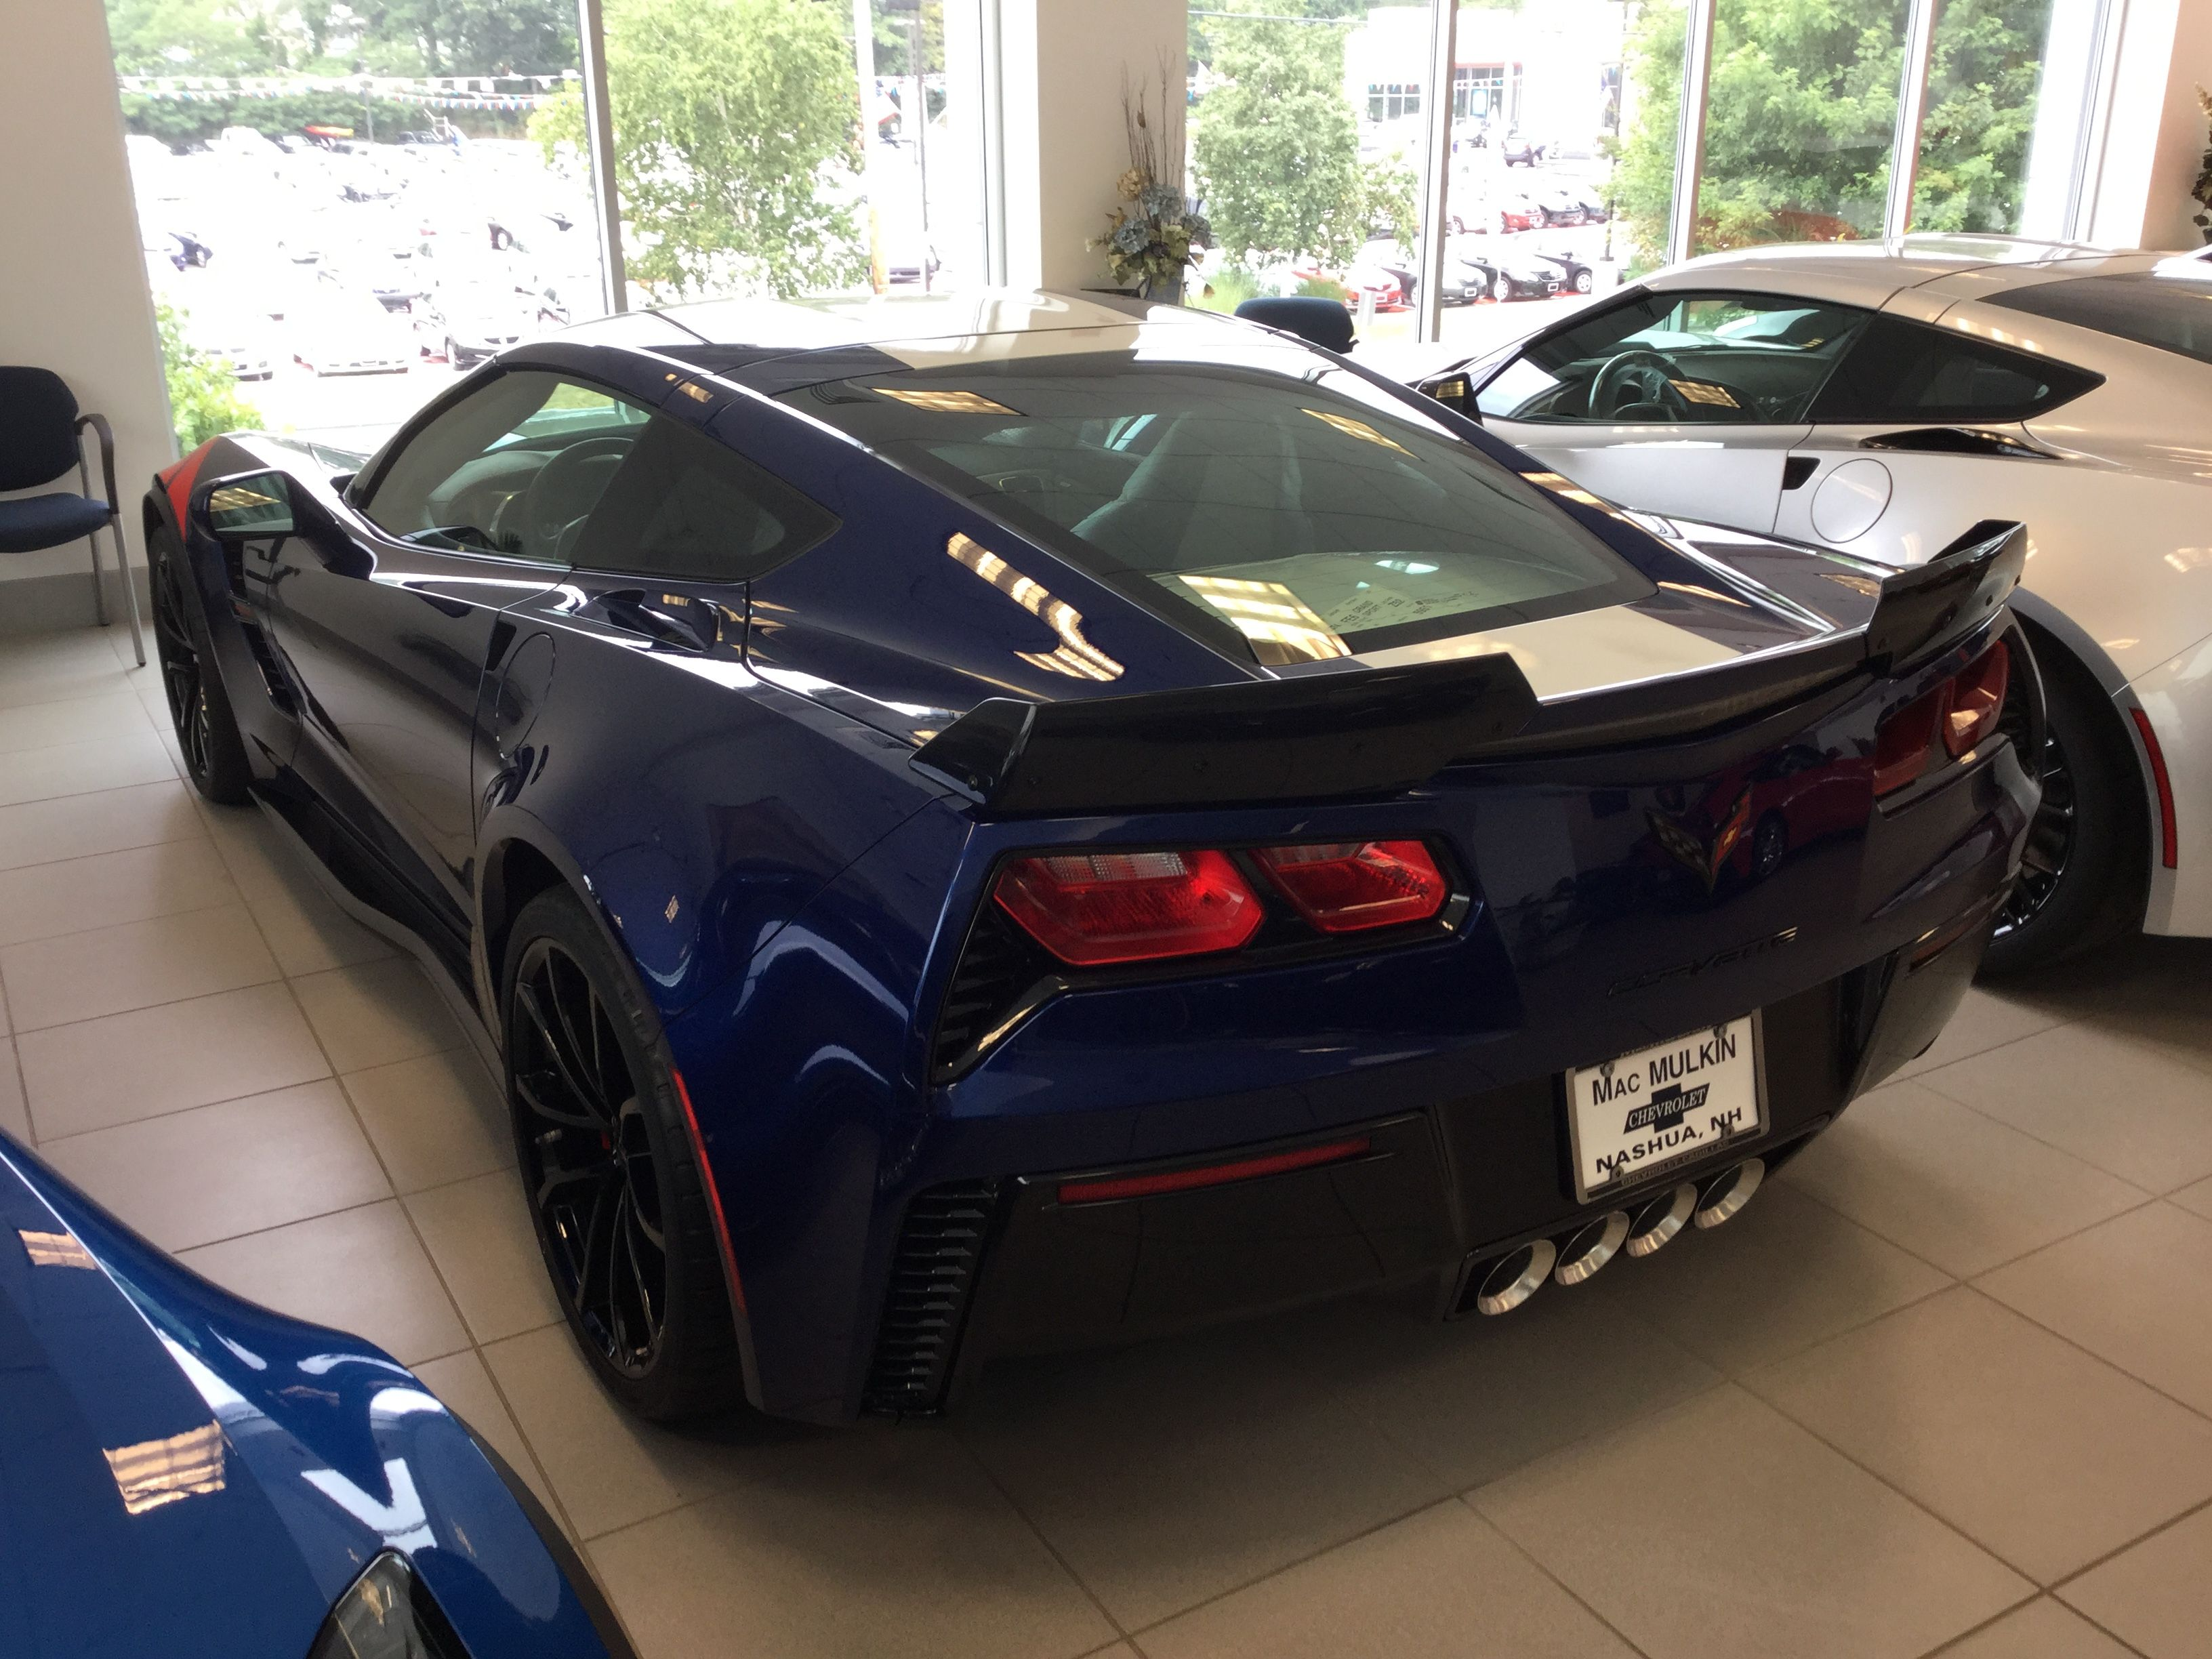 2017 corvette grand sport heritage package in arctic white corvette - 2017 Corvette Grand Sport In Admiral Blue Metallic With Light Gray Interior Trim Package And Grand Sport Heritage Package